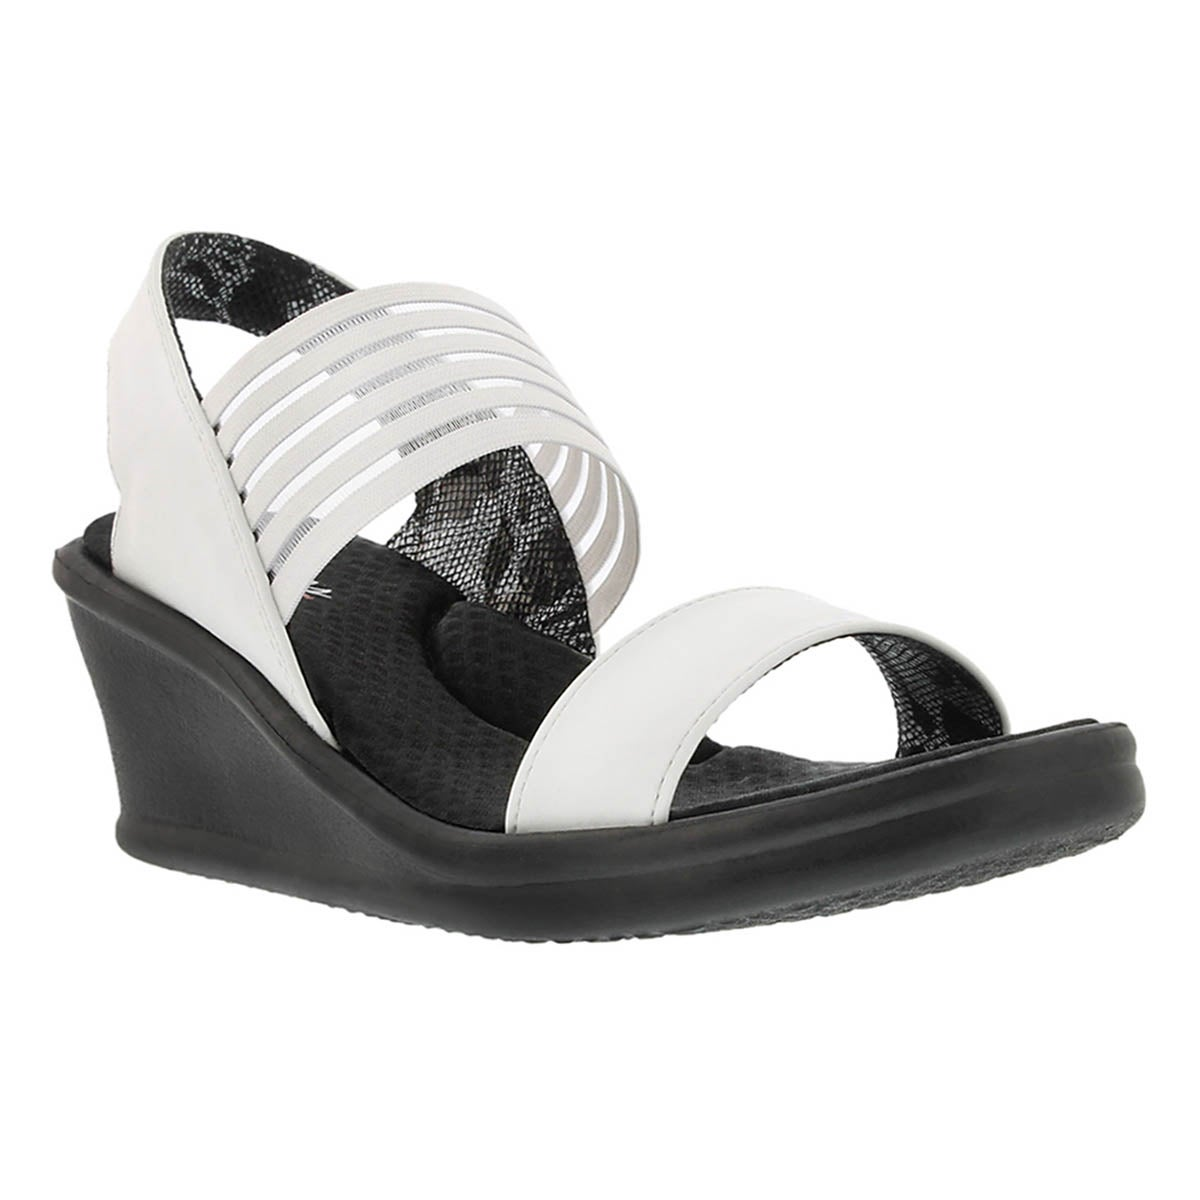 Women's SCI-FI white sling back wedge sandals